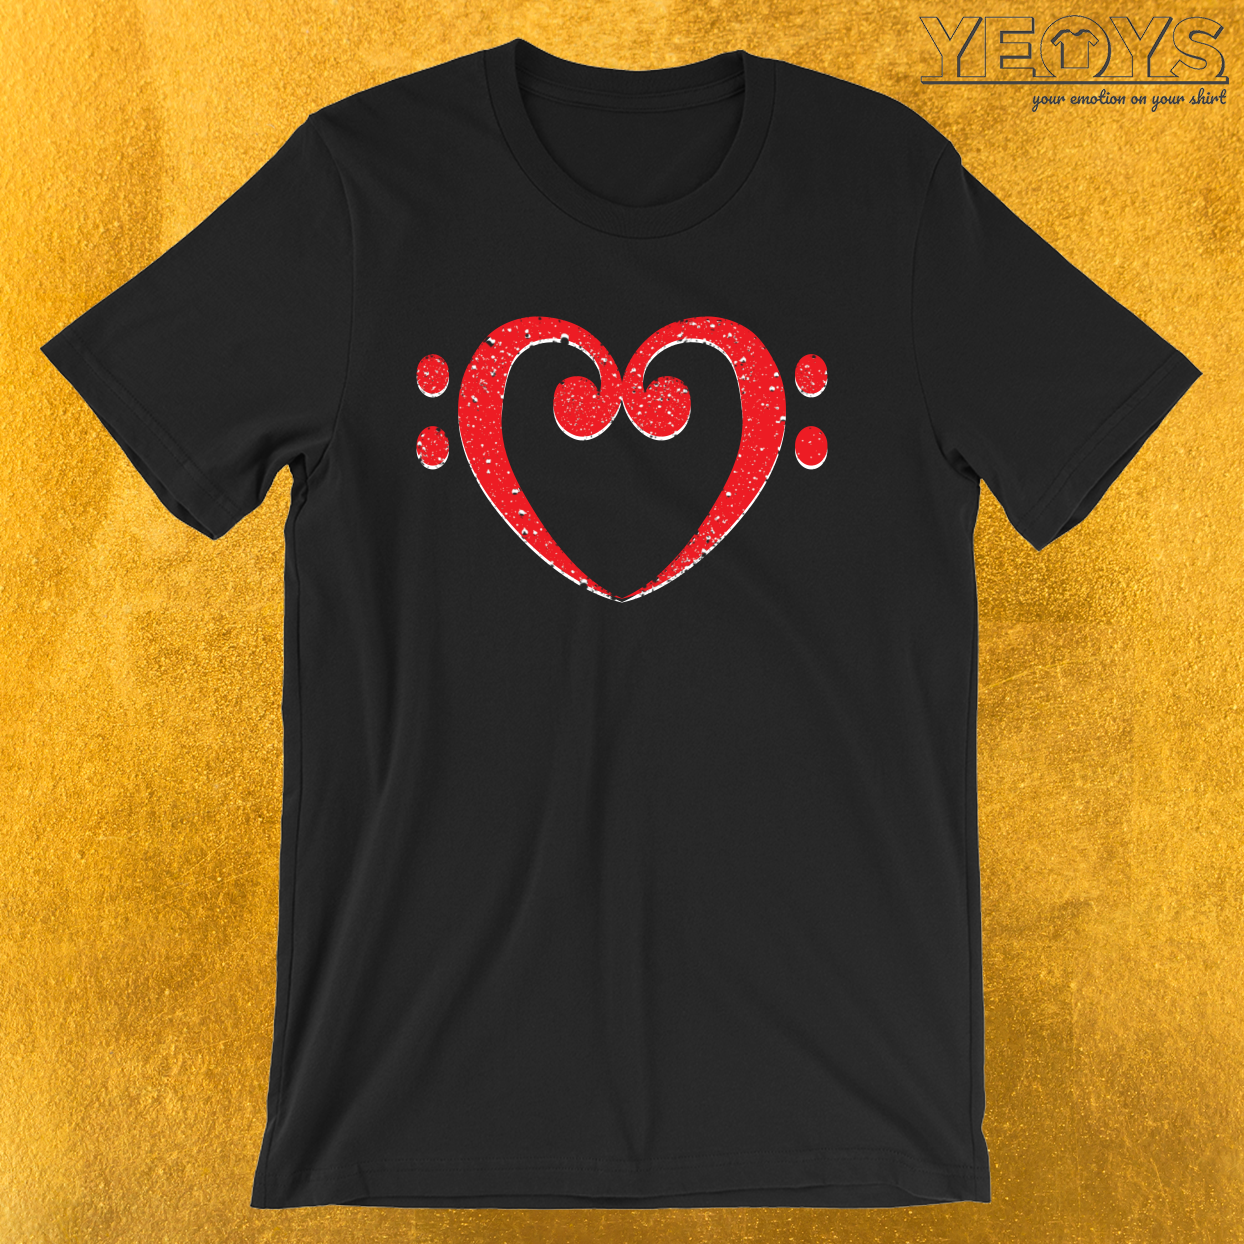 Funny Music Quotes – Bass Clef Heart Tee